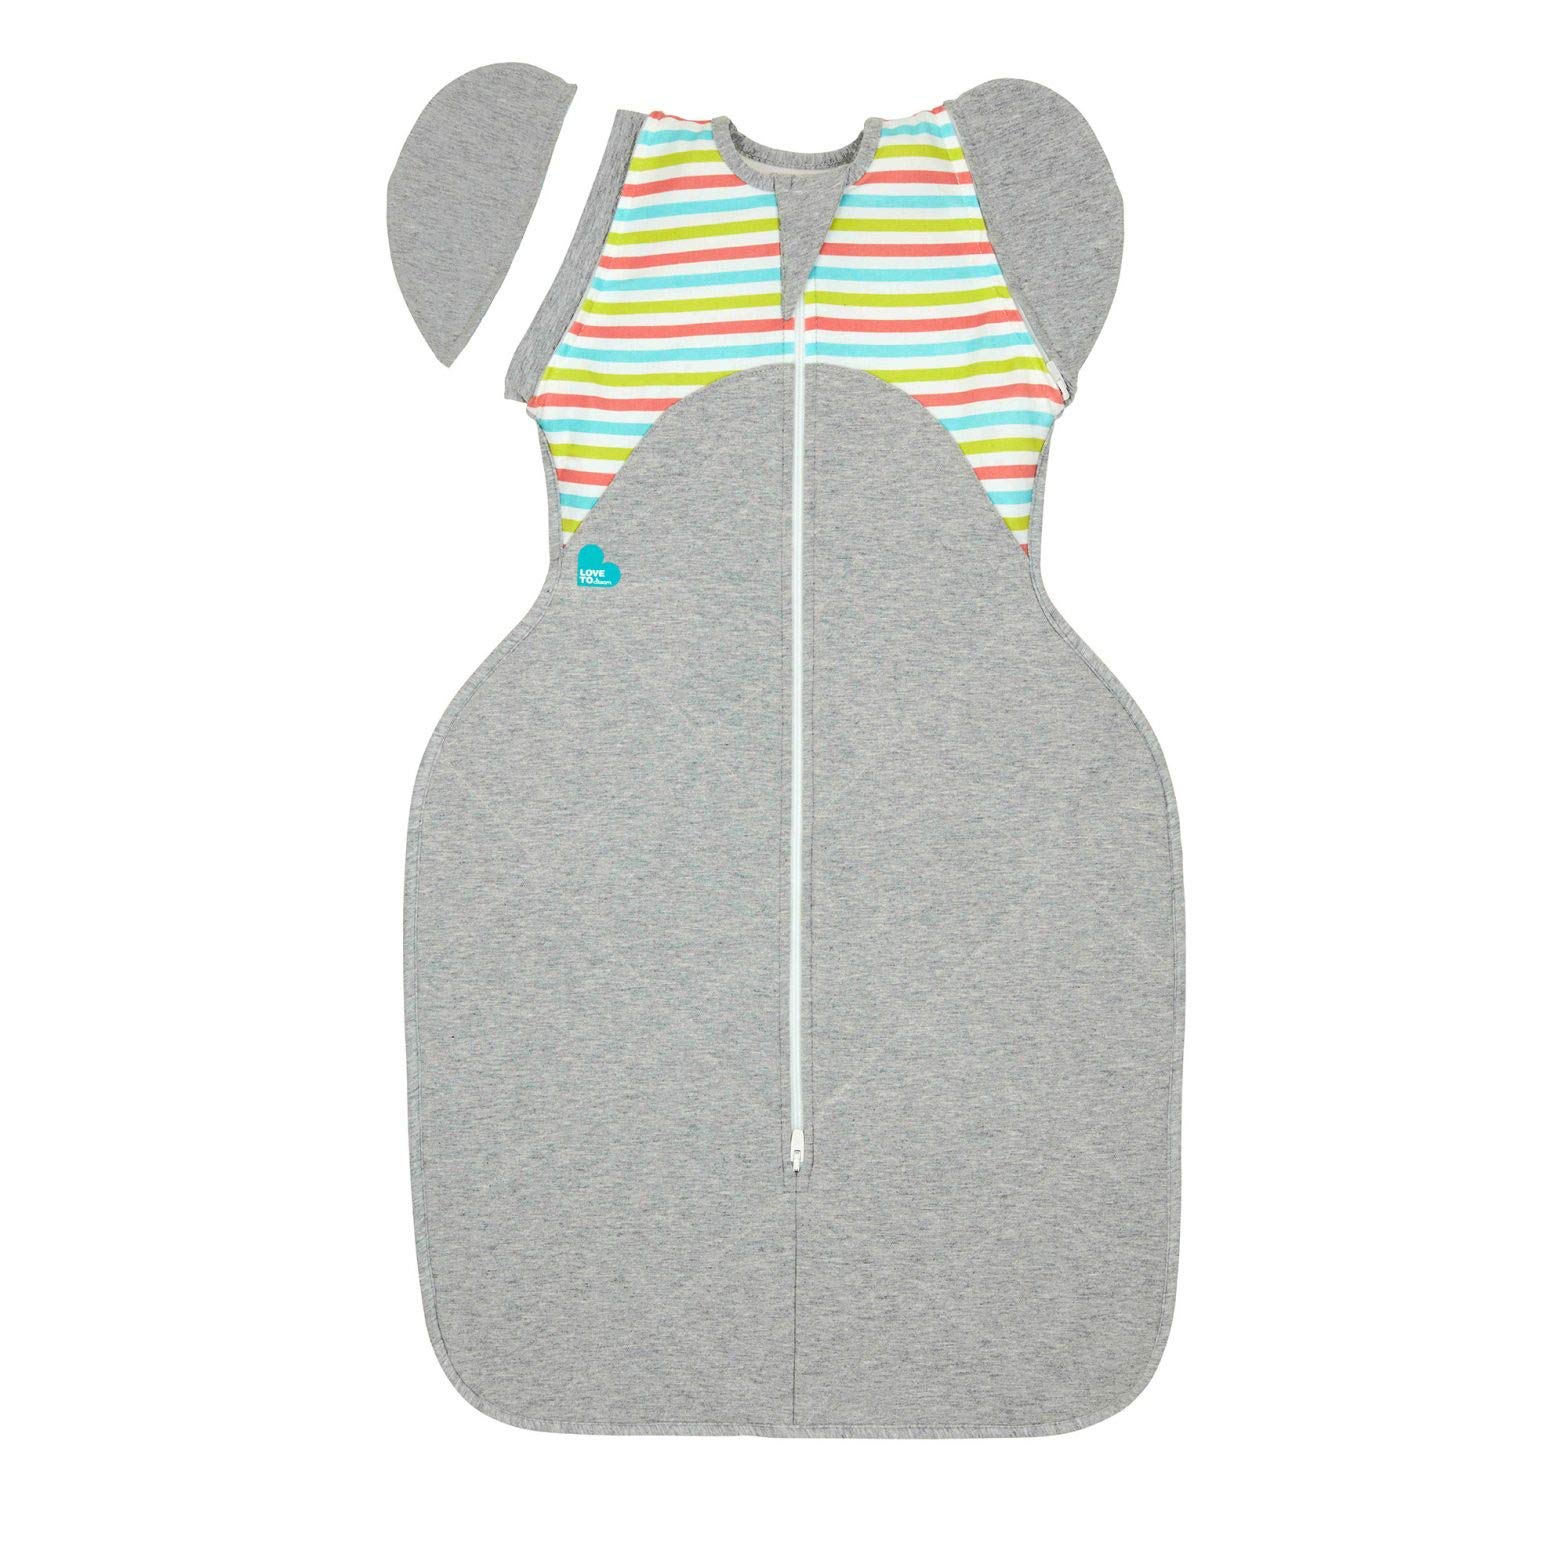 Love To Dream Swaddle UP 50/50 Transition Bag Warm, Multi, Medium, 13-19 lbs, Patented Zip-Off Wings, Gently Help Baby Safely Transition from Being swaddled to arms Free Before Rolling Over by Love To Dream